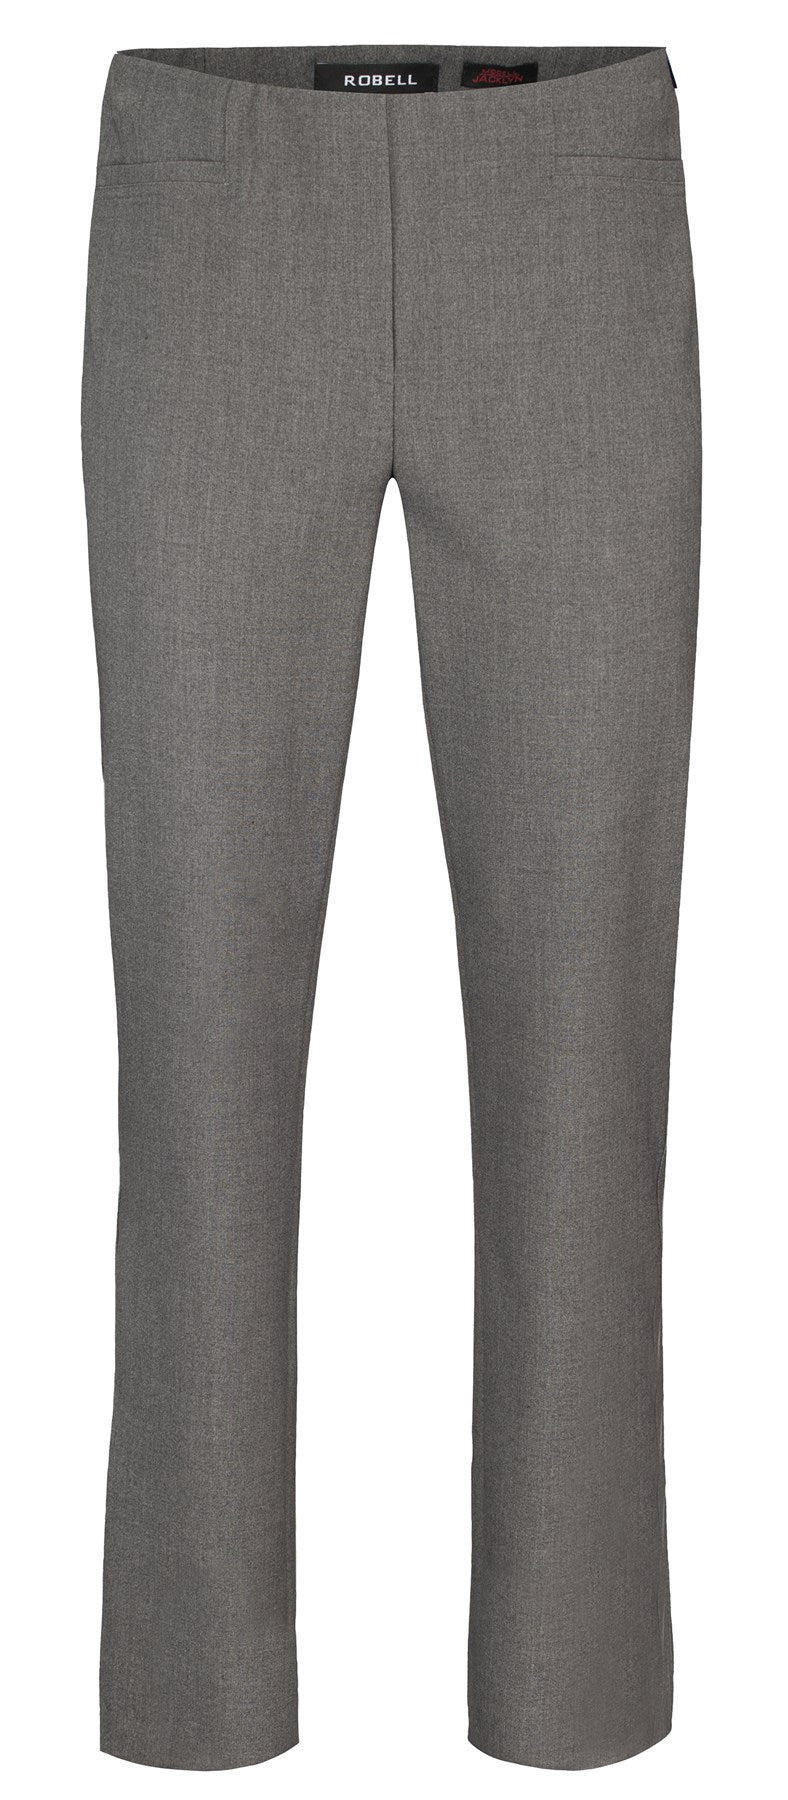 Jacklyn Grey Classic Trousers from Robelle at Rocco Boutique Dublin